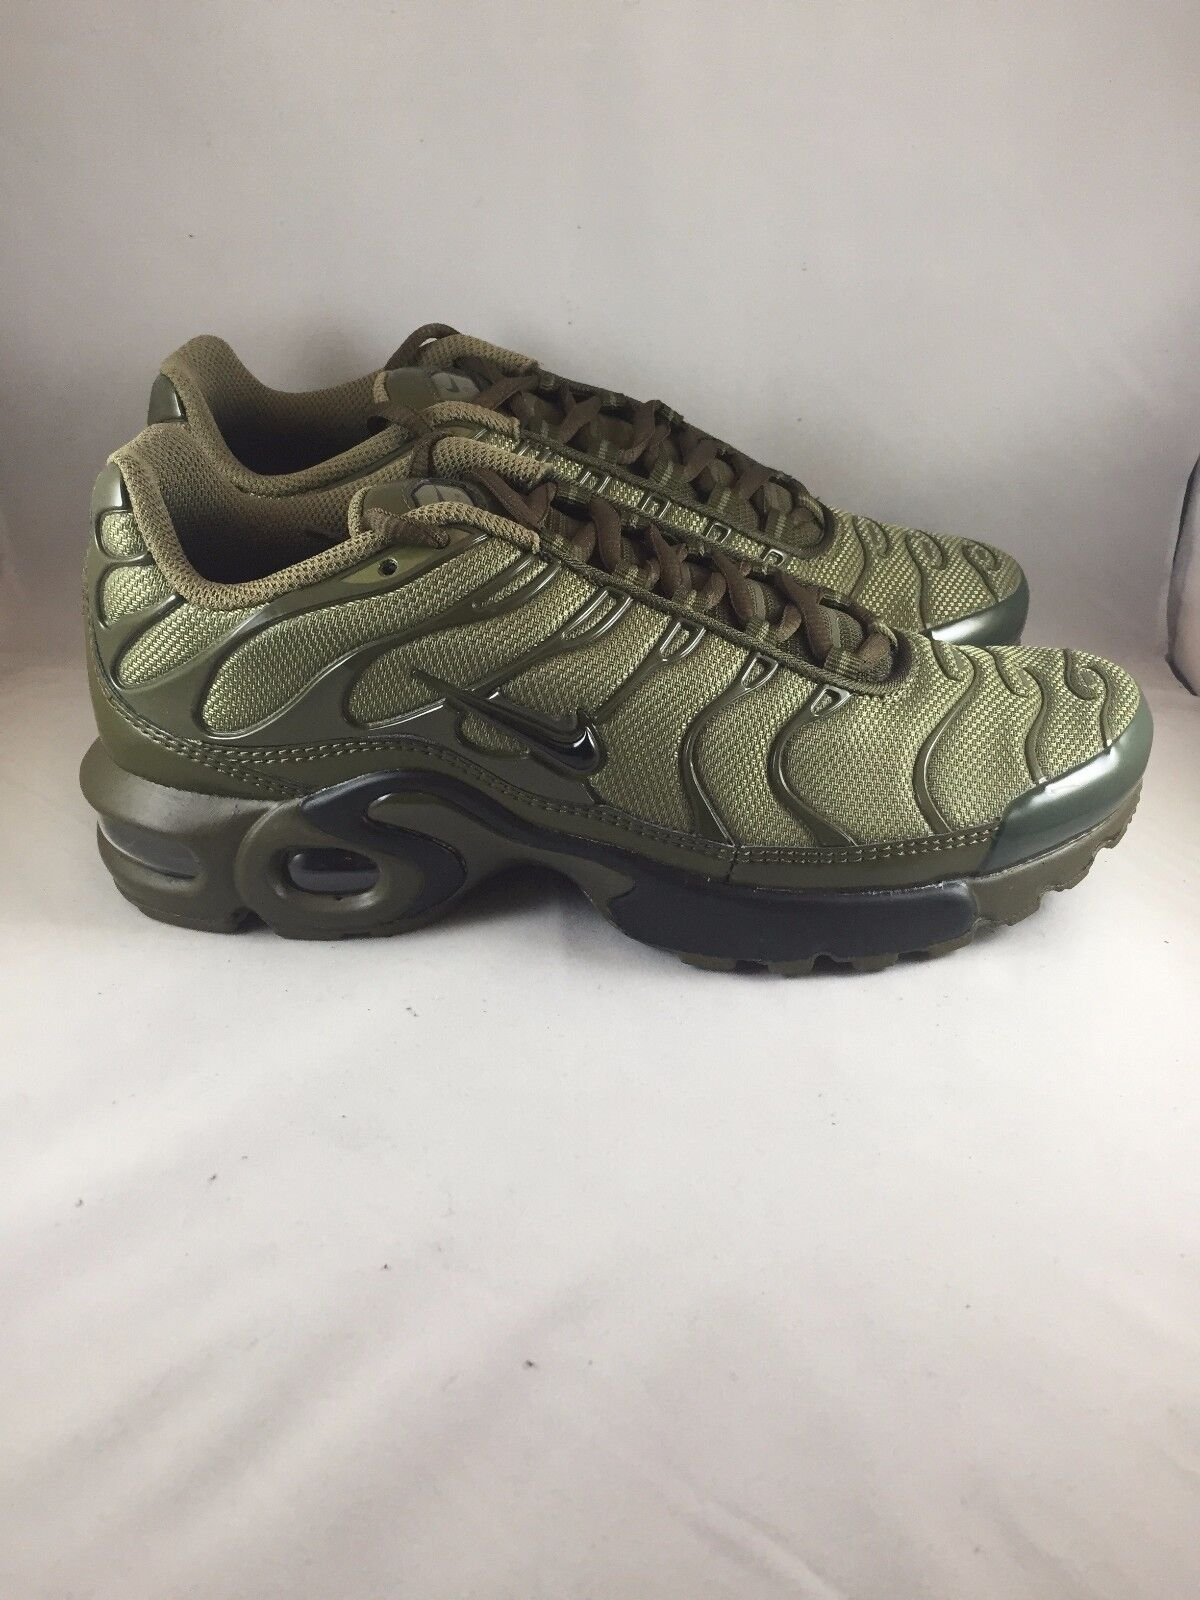 reputable site 4e68f 70310 Nike Air Max Plus (GS) Tn Tuned Cargo Olive Green , 655020 200 all sizes